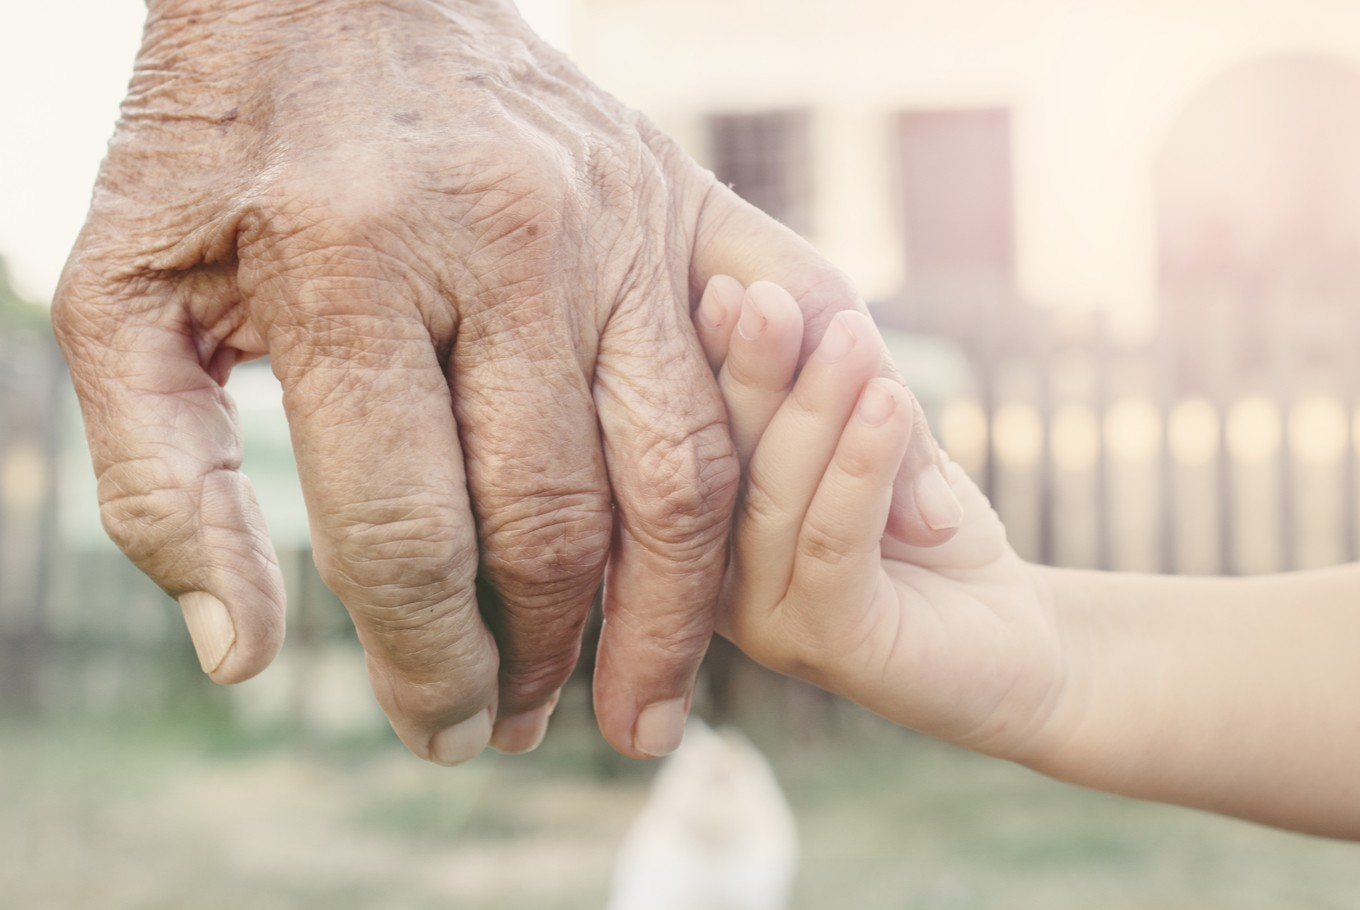 Commentary: Another side of the elderly: You reap what you sow